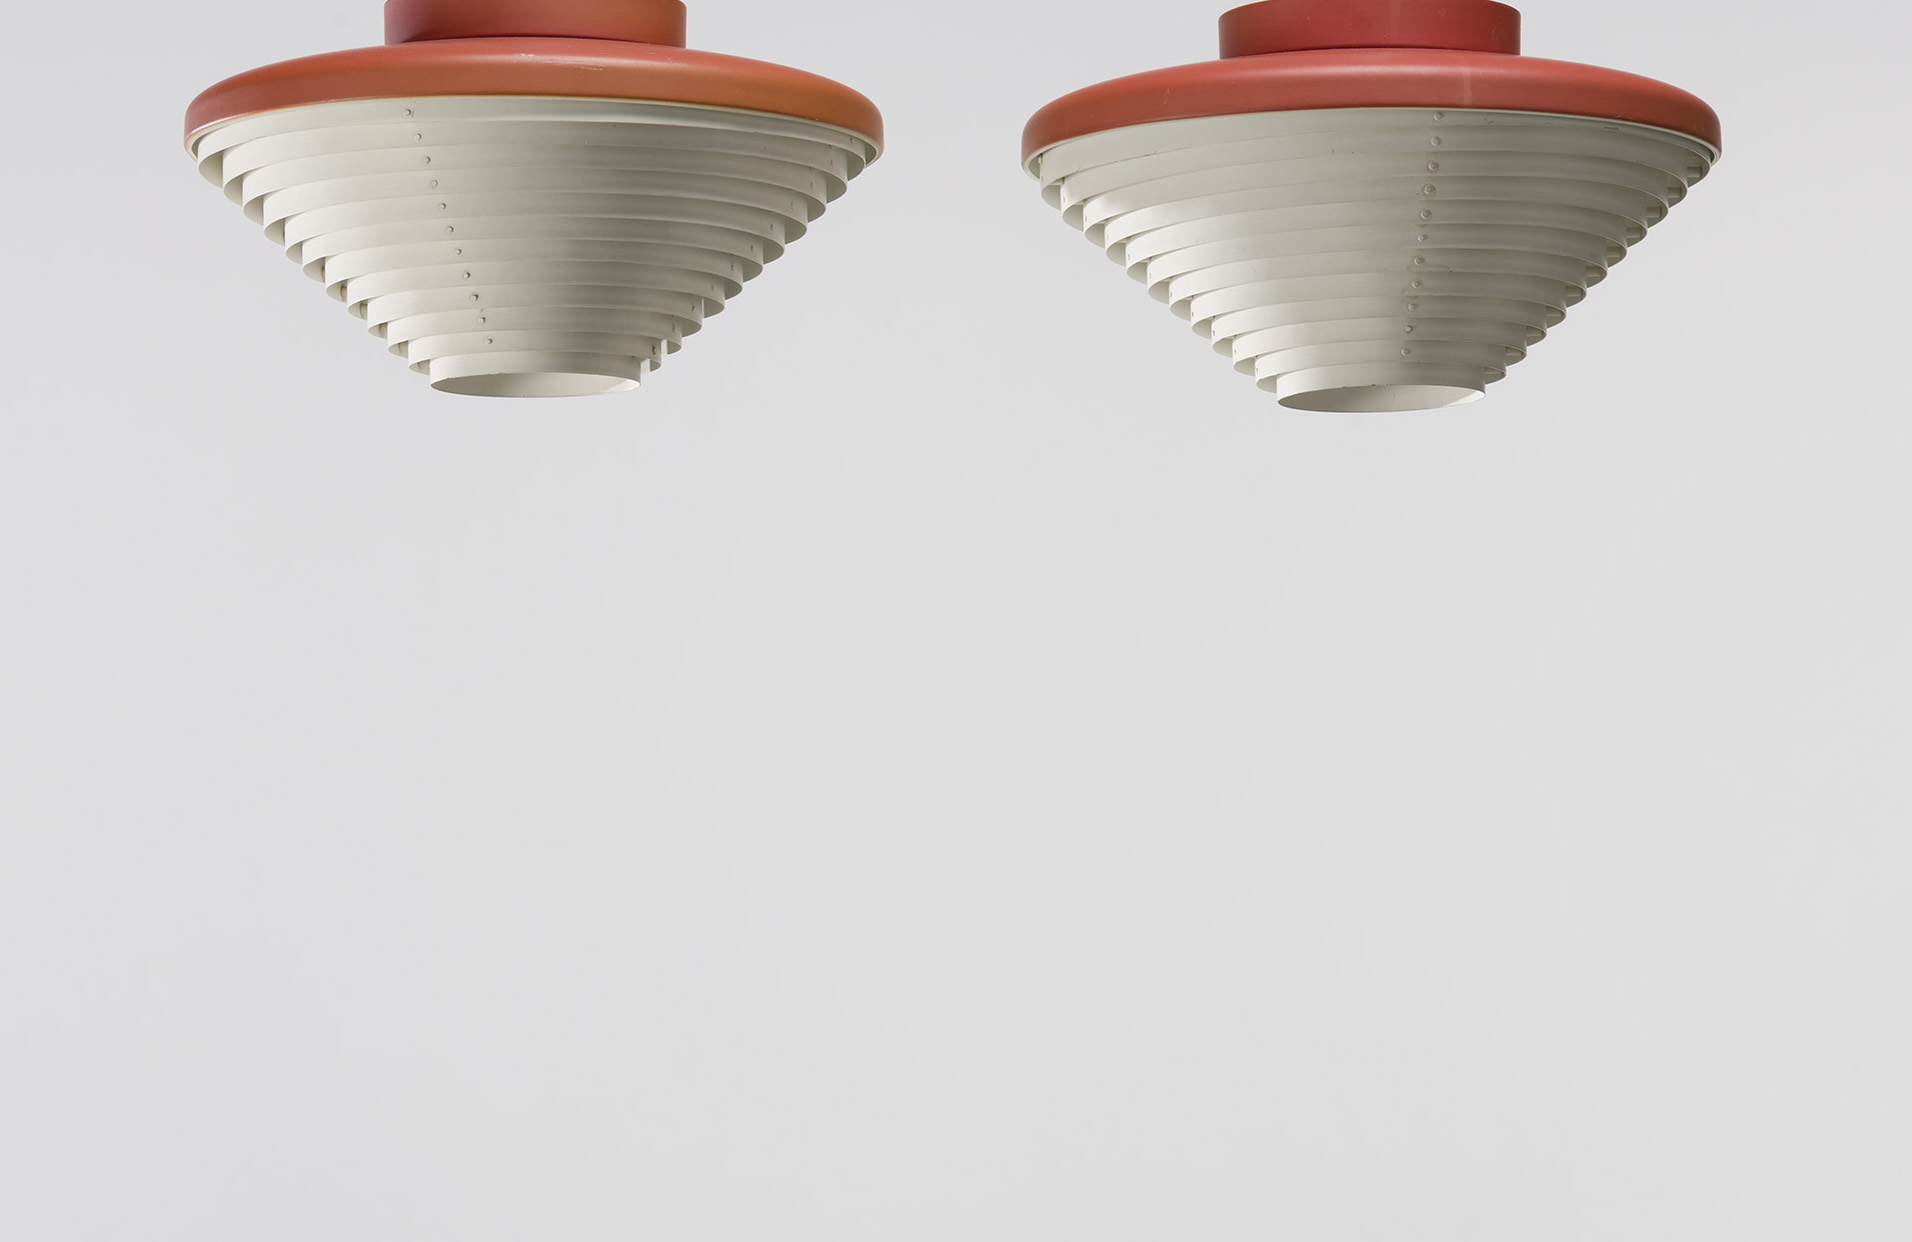 Pair of Ceiling Lamps, Model no. A 605